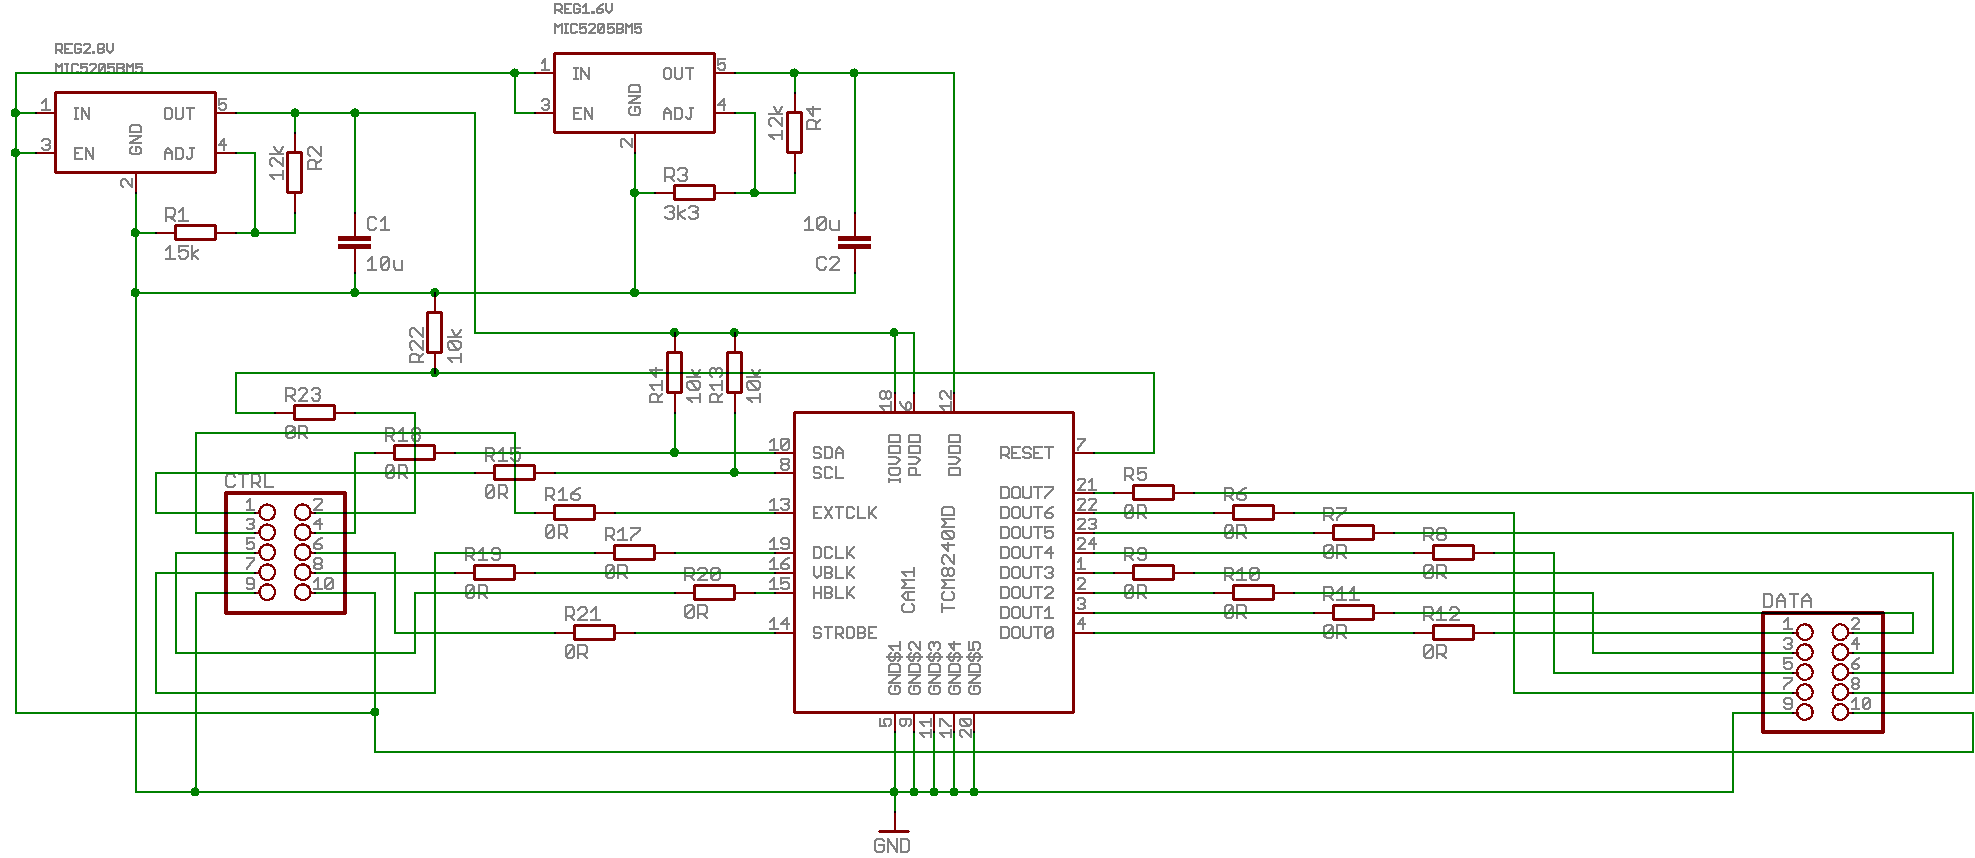 cmos_breakout_1.1_schematic.png